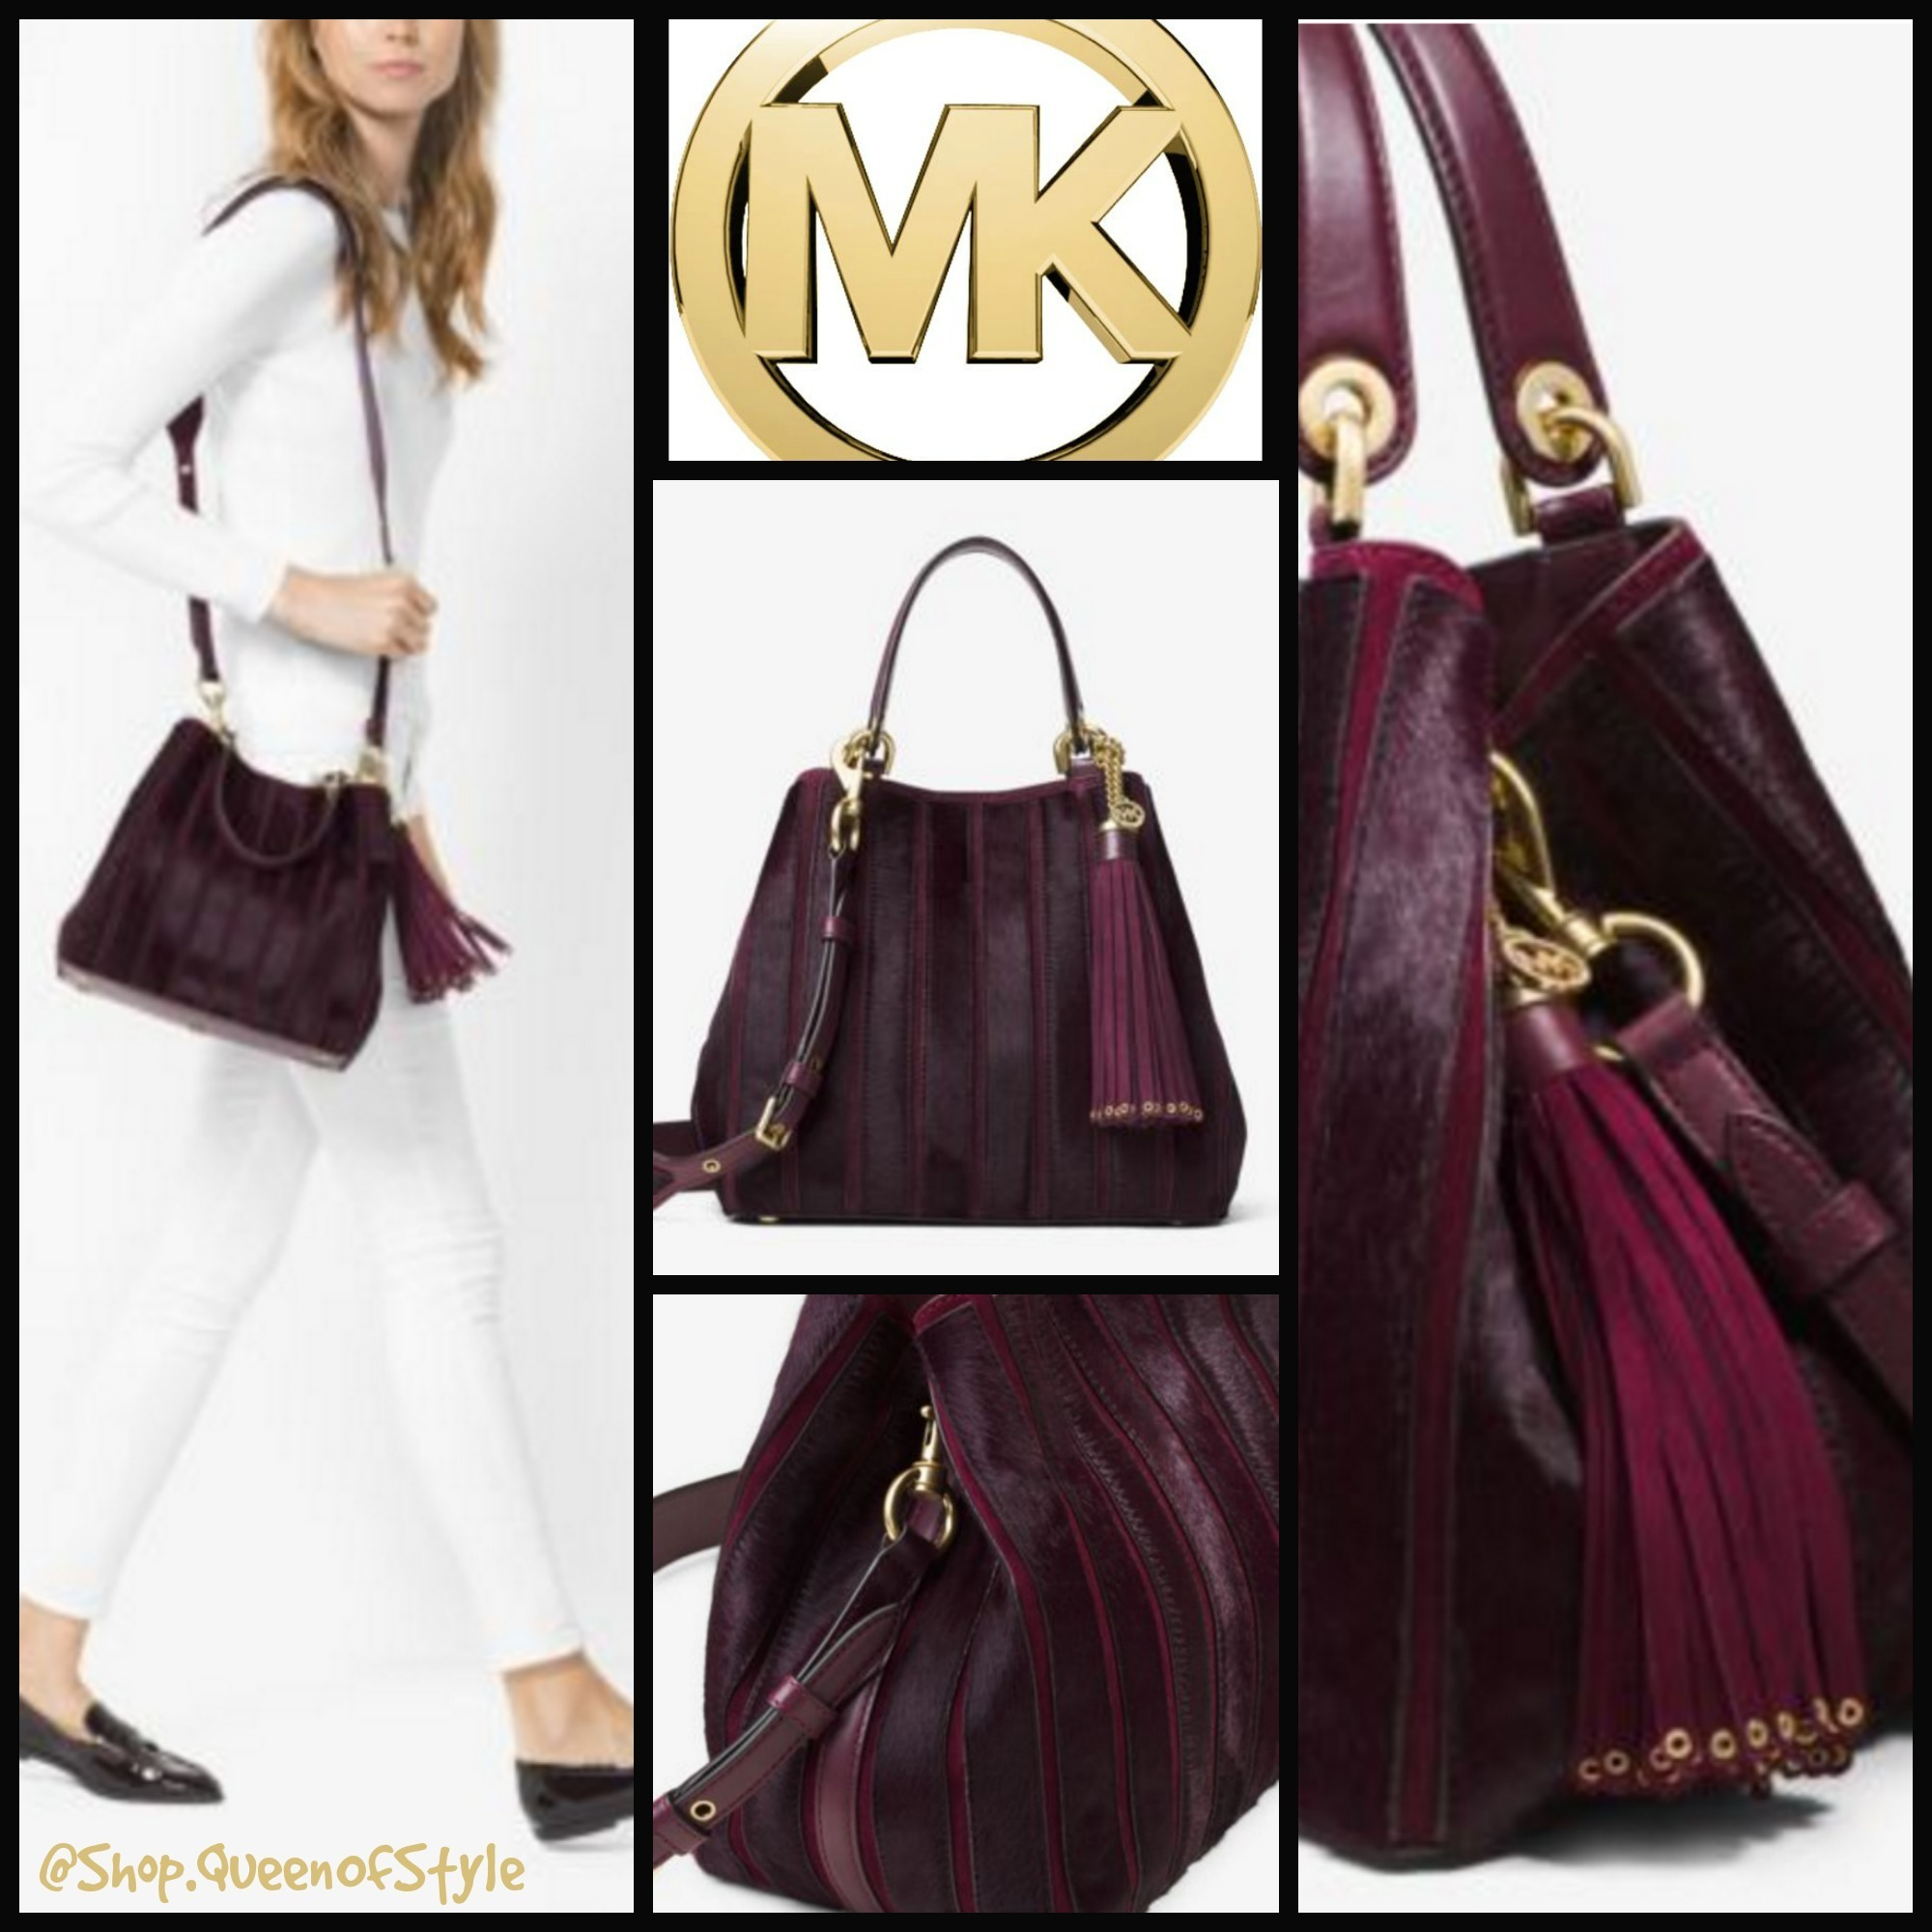 78ea6787f1eb ... switzerland michael kors mk michael kors brooklyn medium appliqué suede  shoulder bag by queenofstyle buyma 065ee